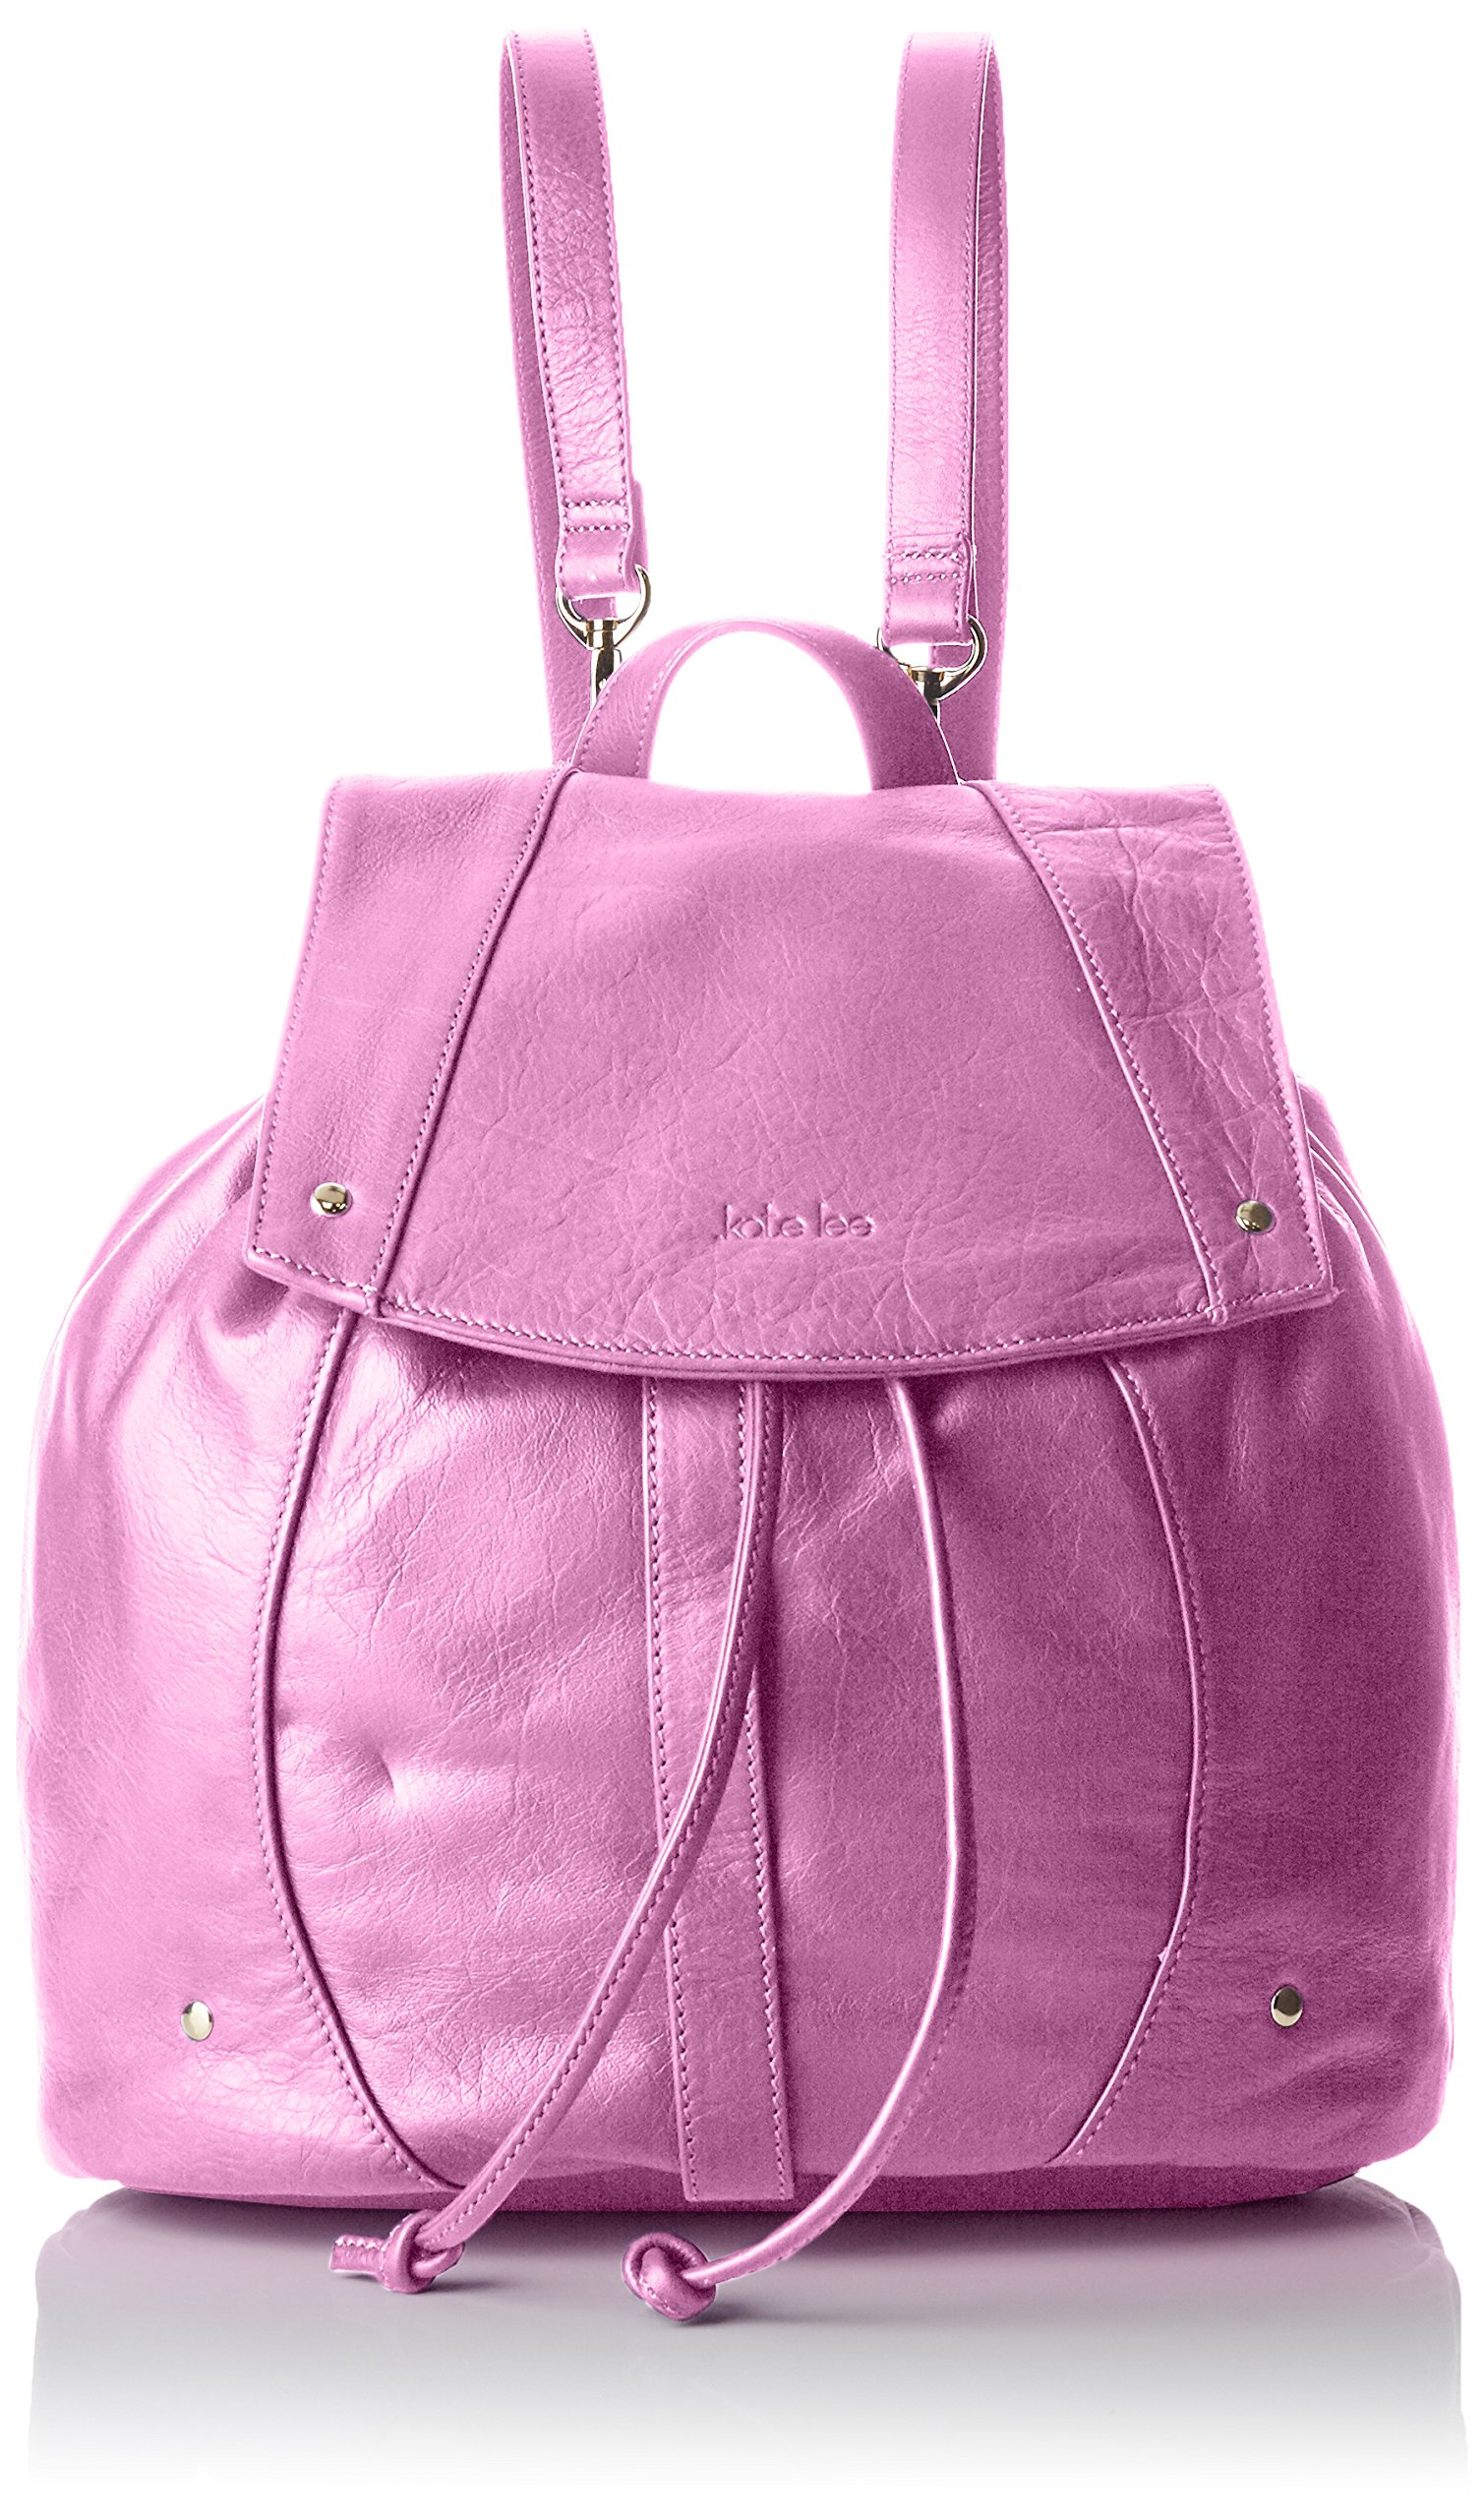 Coraly Porte Kate Lee Roseorchidee Femme Sac Dos 9EDH2IWY